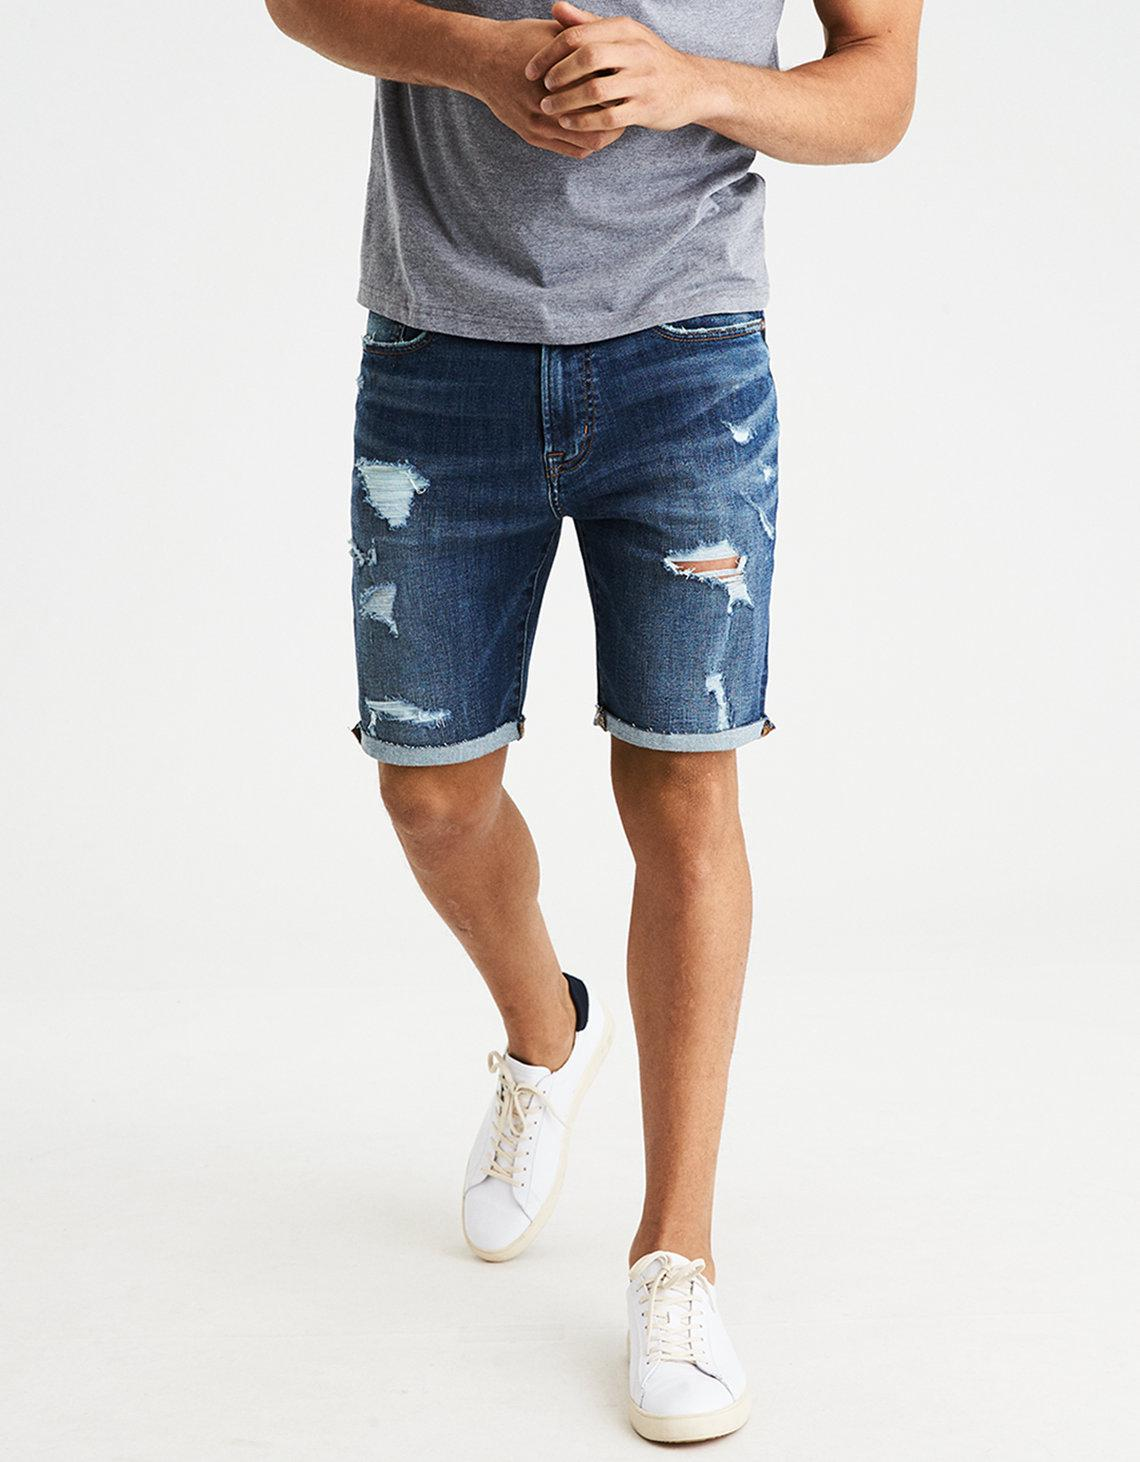 Eagle american jean shorts photo forecast to wear in summer in 2019